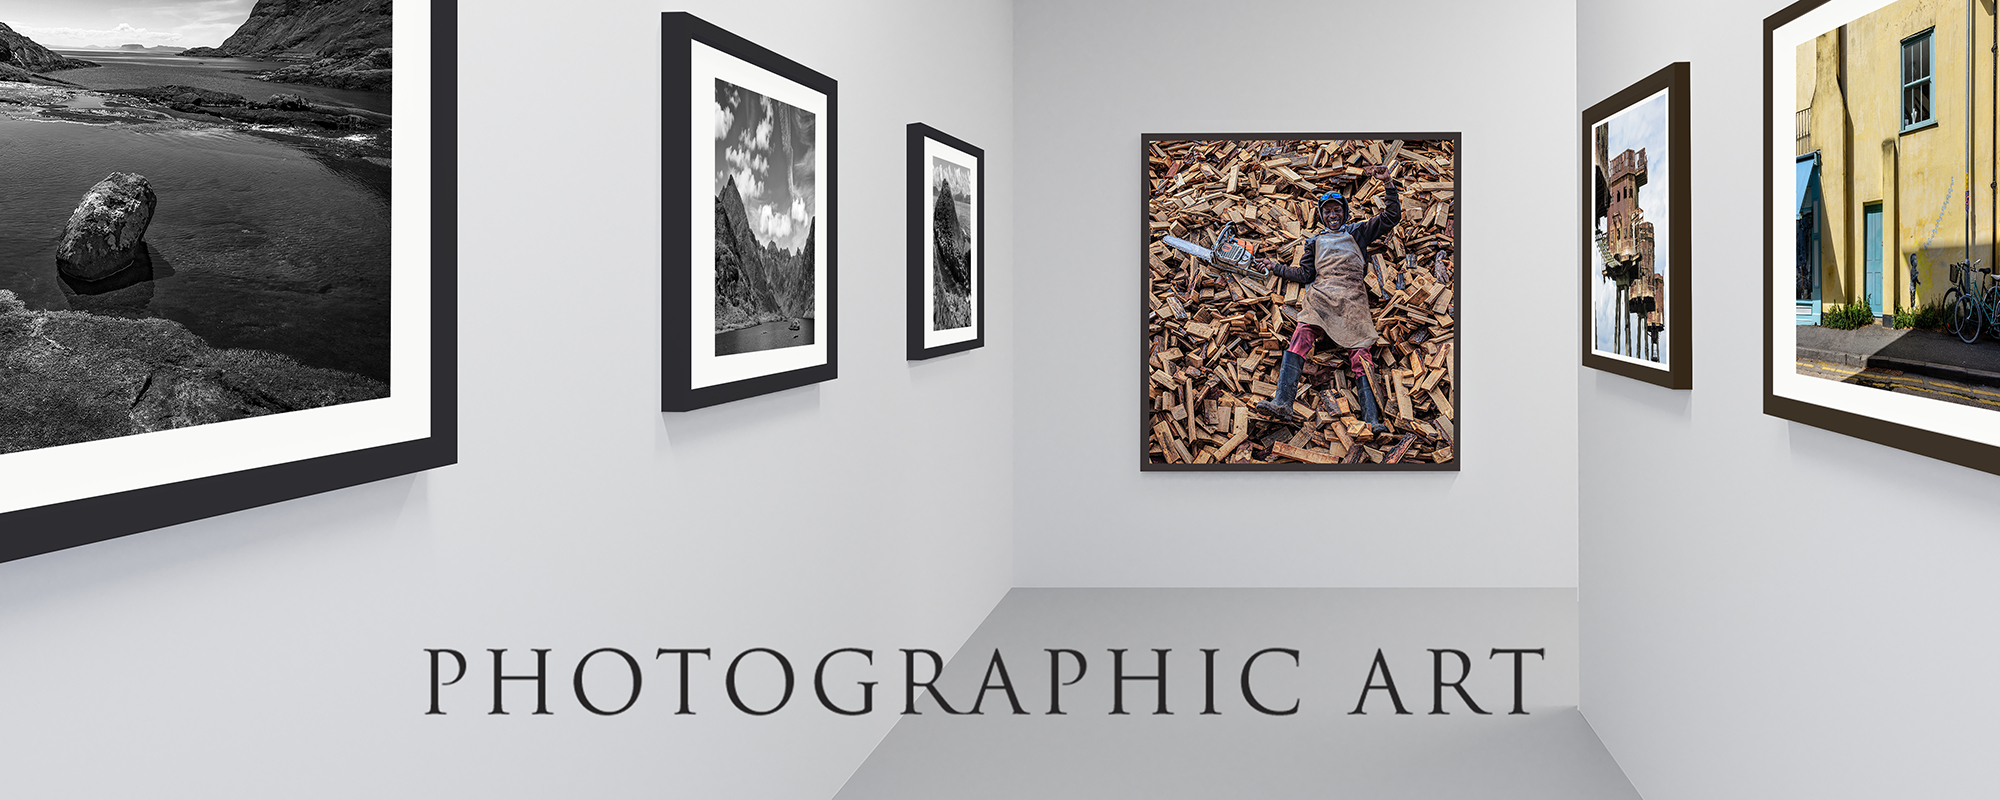 photographic art home page photo